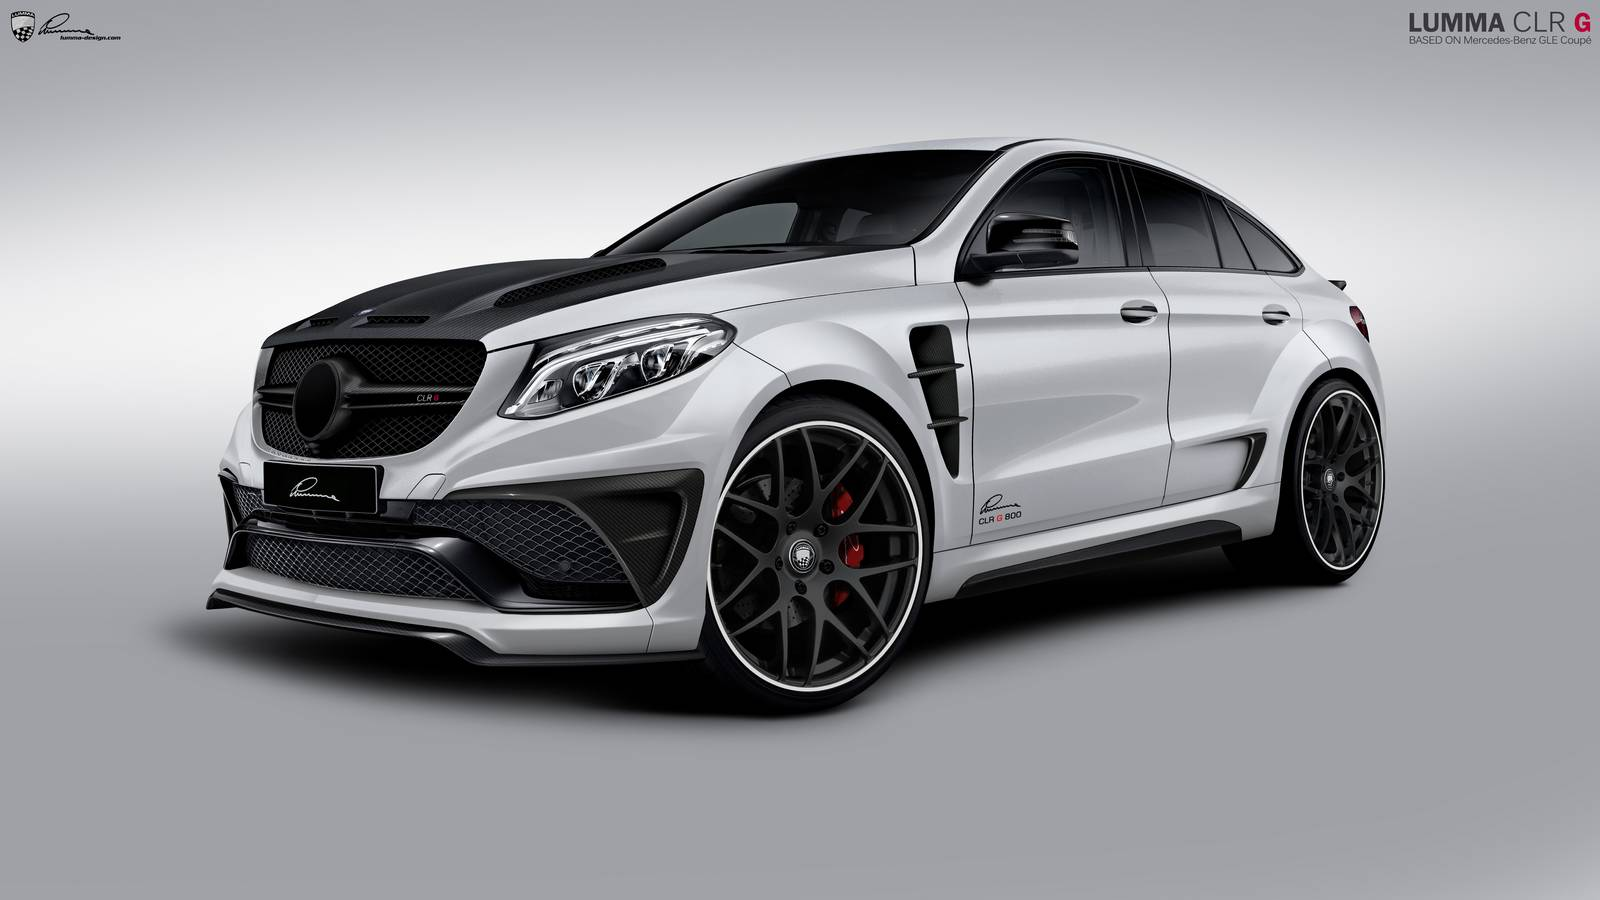 official lumma clr g800 mercedes amg gle63 coupe gtspirit. Black Bedroom Furniture Sets. Home Design Ideas